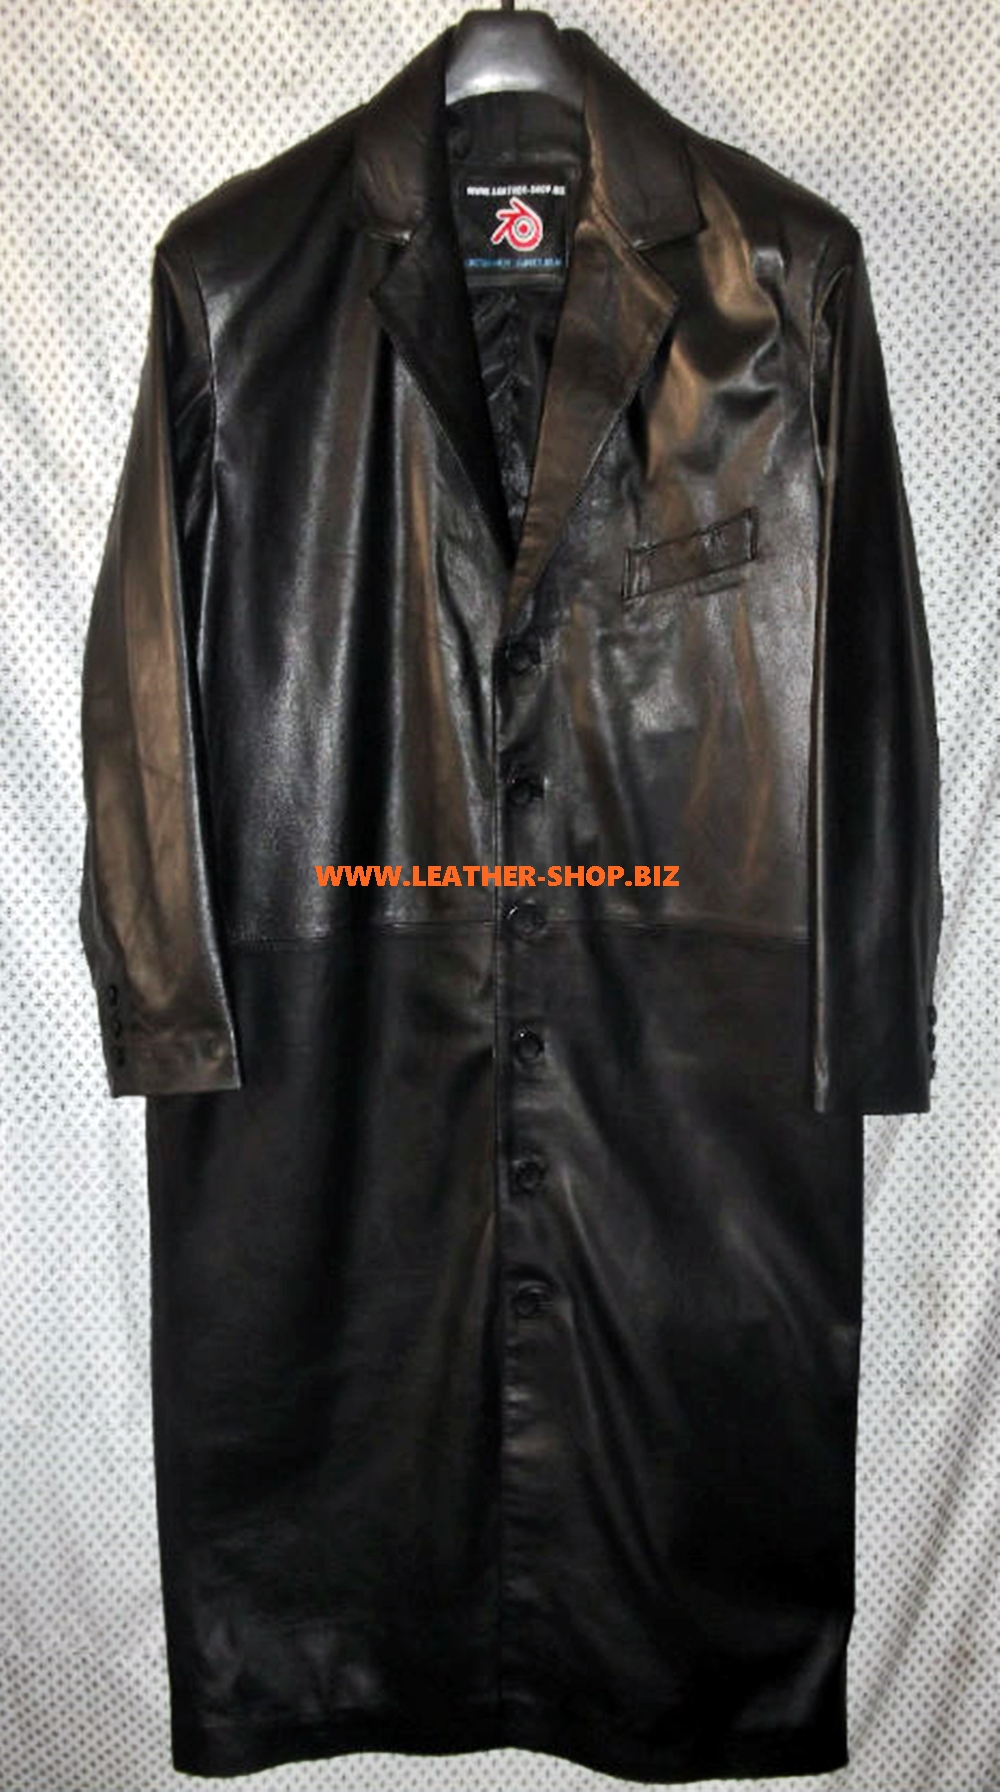 men-s-leather-trench-coat-custom-made-style-mtc610-www.leather-shop.biz-front-image.jpg